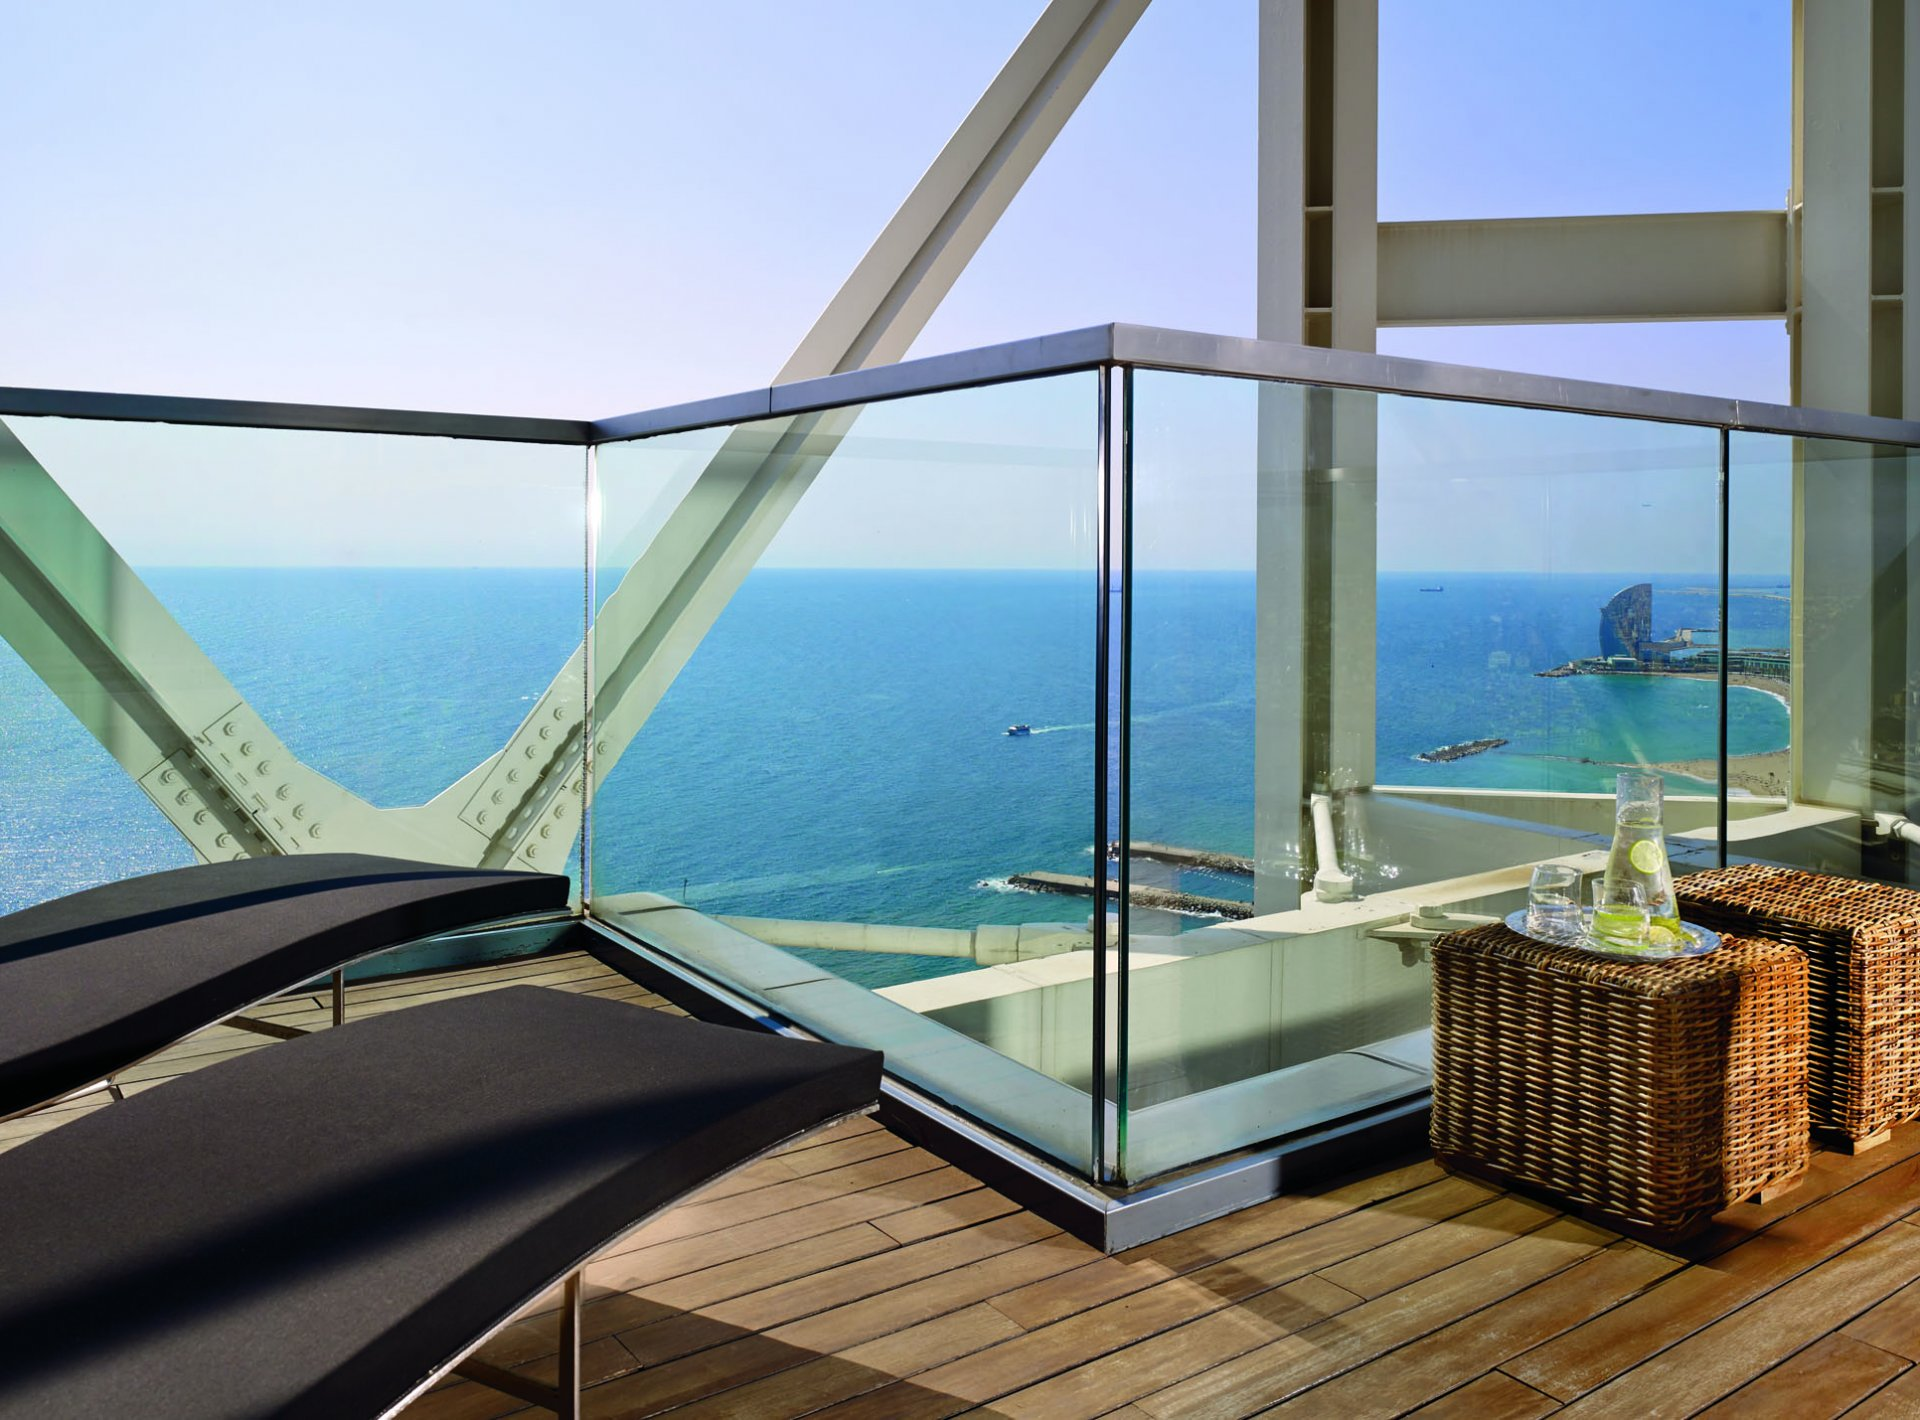 Luxury 3-Bedroom Holiday Apartment to Rent with Sea Views near the Beach in Barcelona